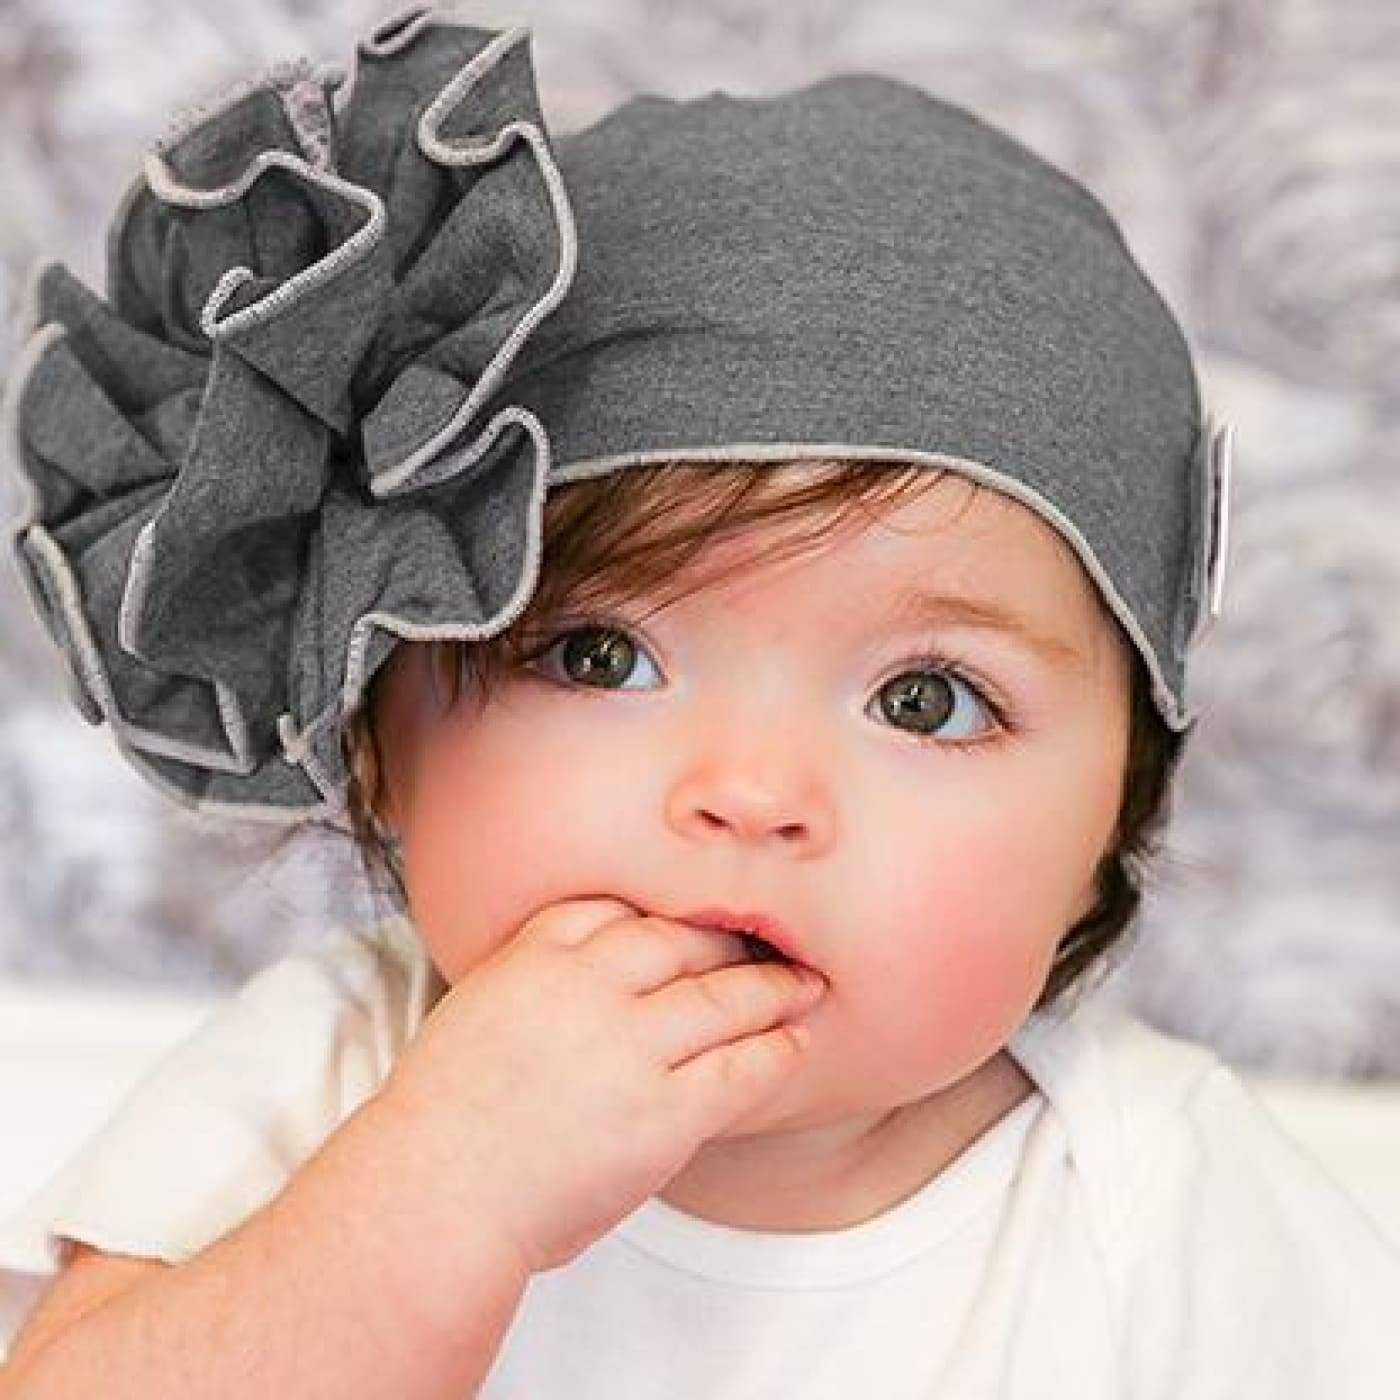 Mod Swad Bamboo Flower Beanie - Metro - Large - Large / Metro - BABY & TODDLER CLOTHING - BEANIES/HATS